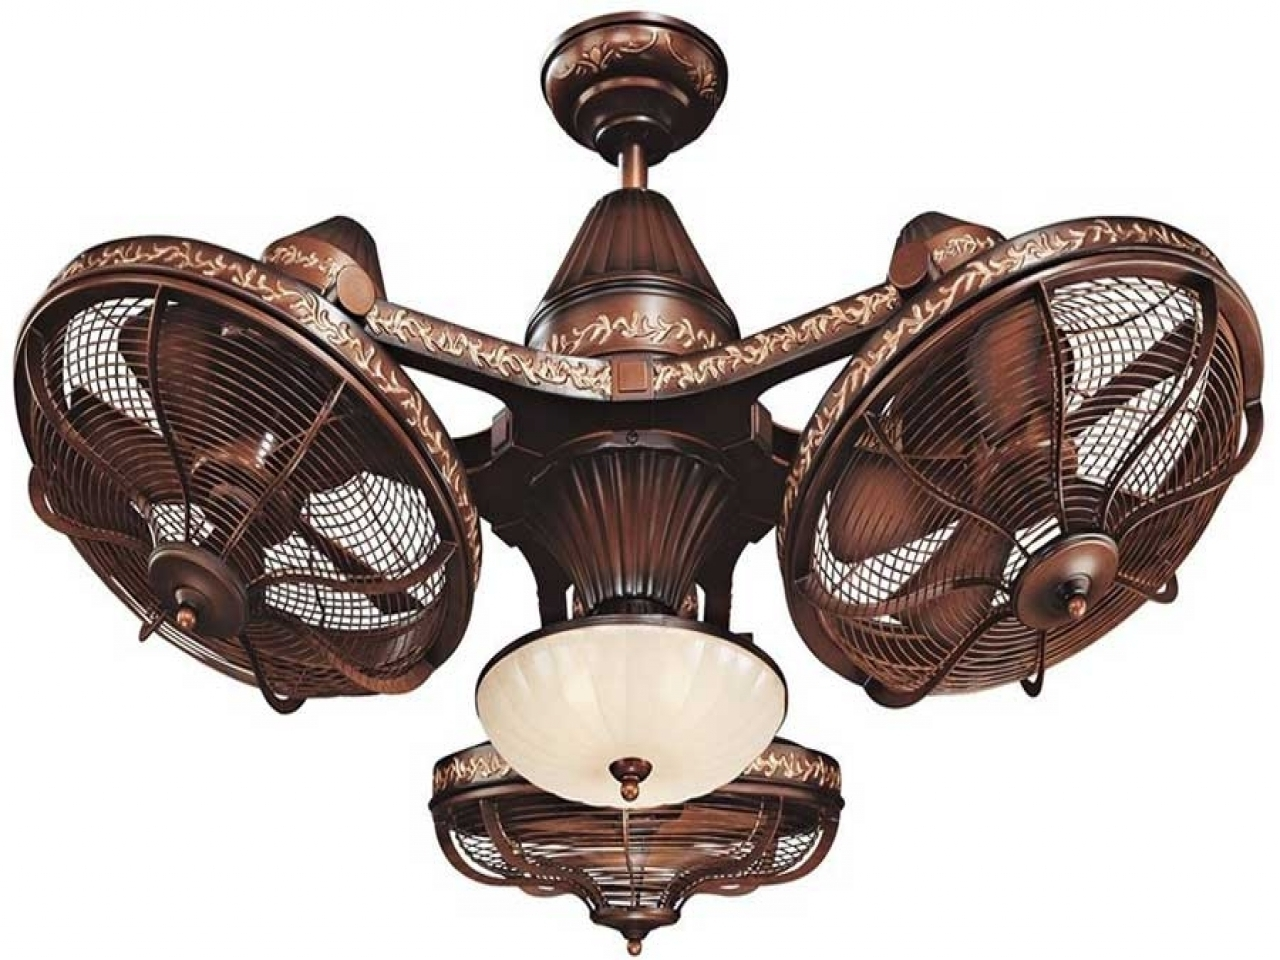 Home Design Hunter Outdoor Ceiling Fan Tropical Fans Unique Regarding 2019 Tropical Design Outdoor Ceiling Fans (View 10 of 20)